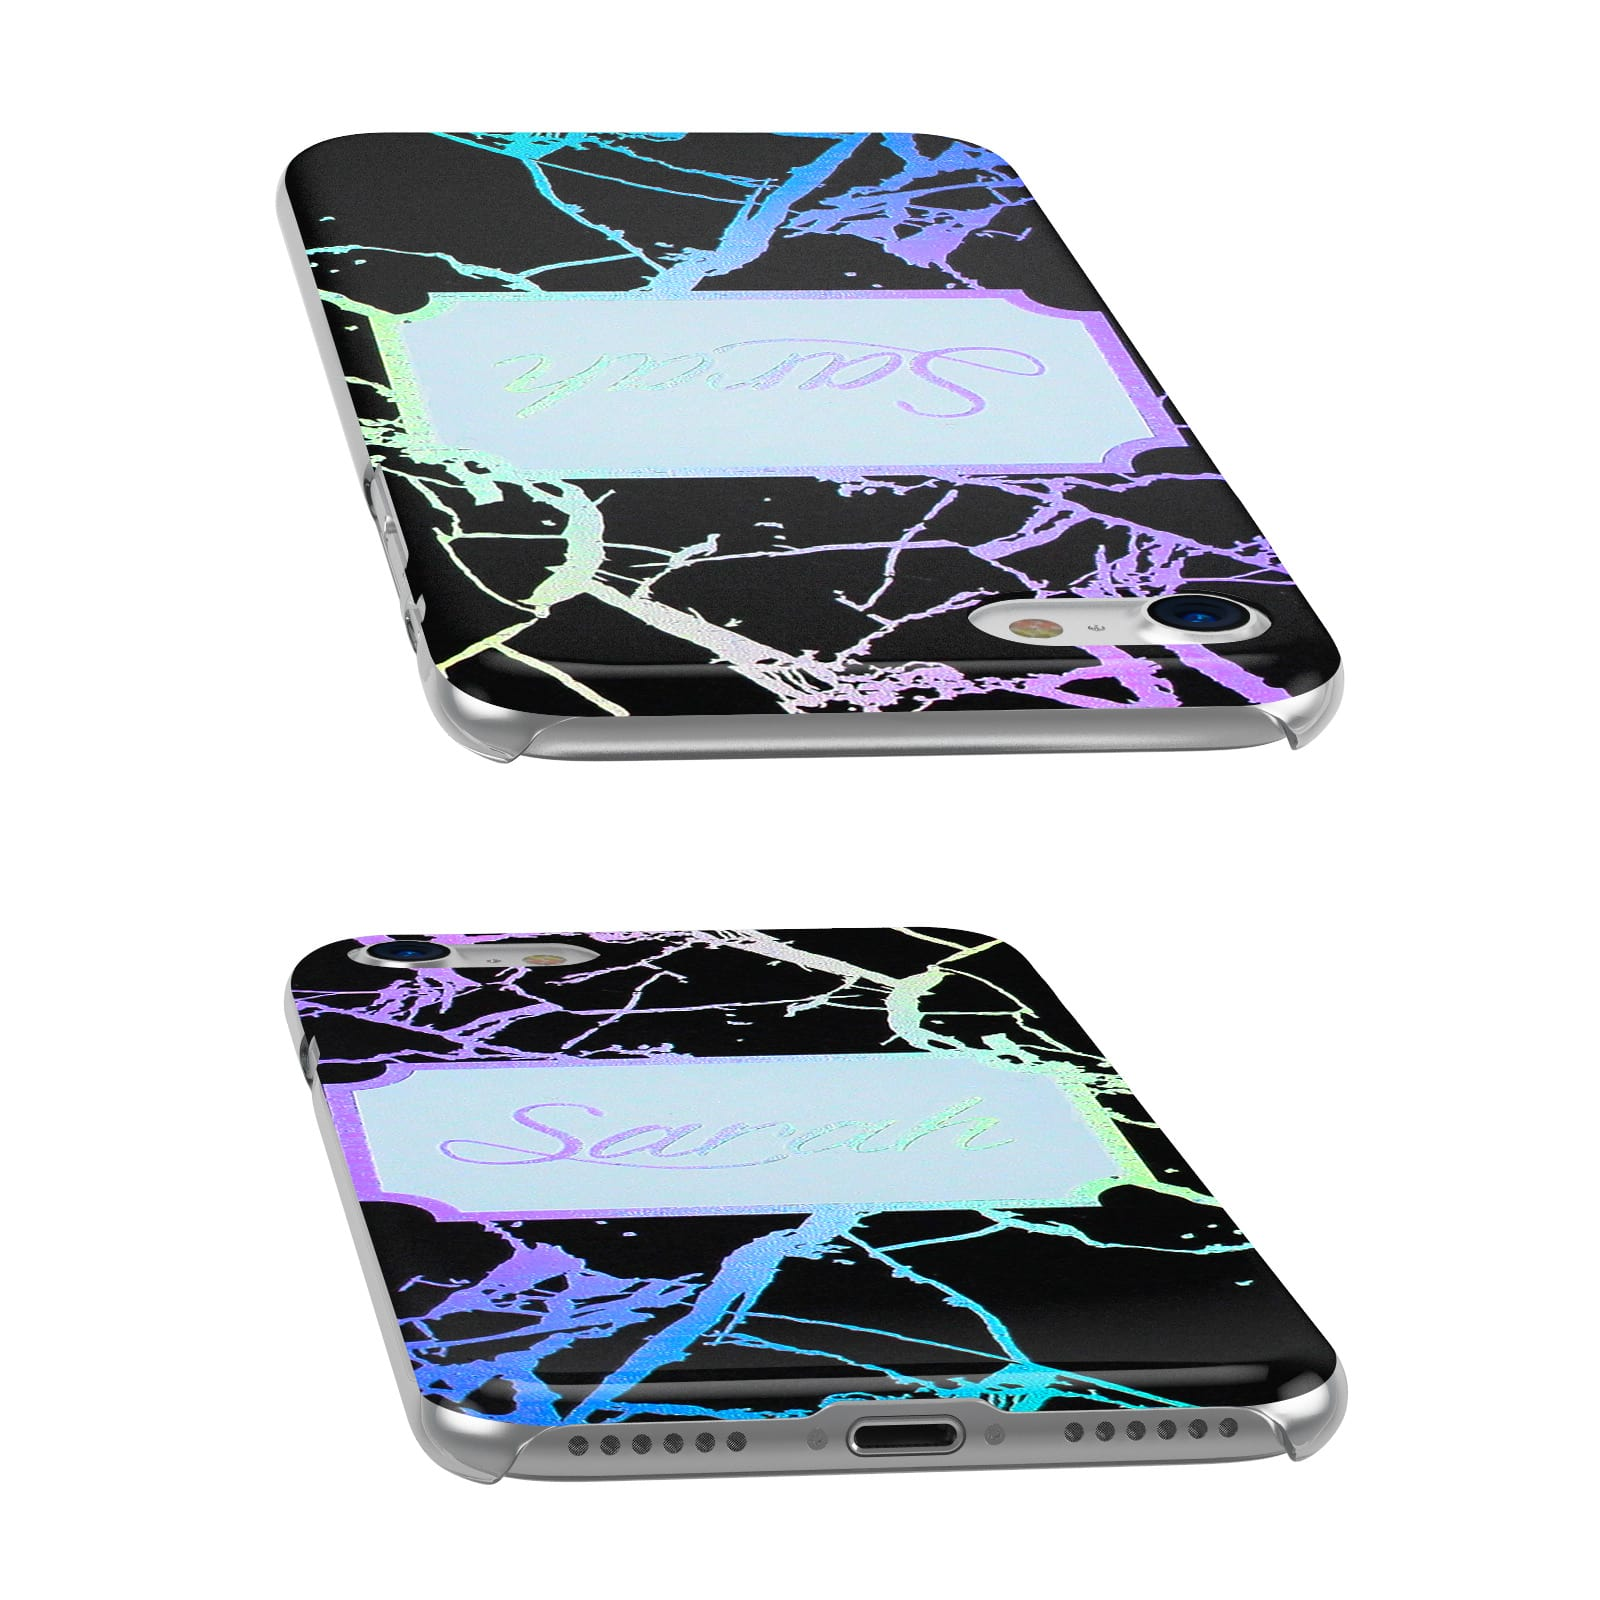 Holographic Marble Black Personalised Apple iPhone Case Ports cutout